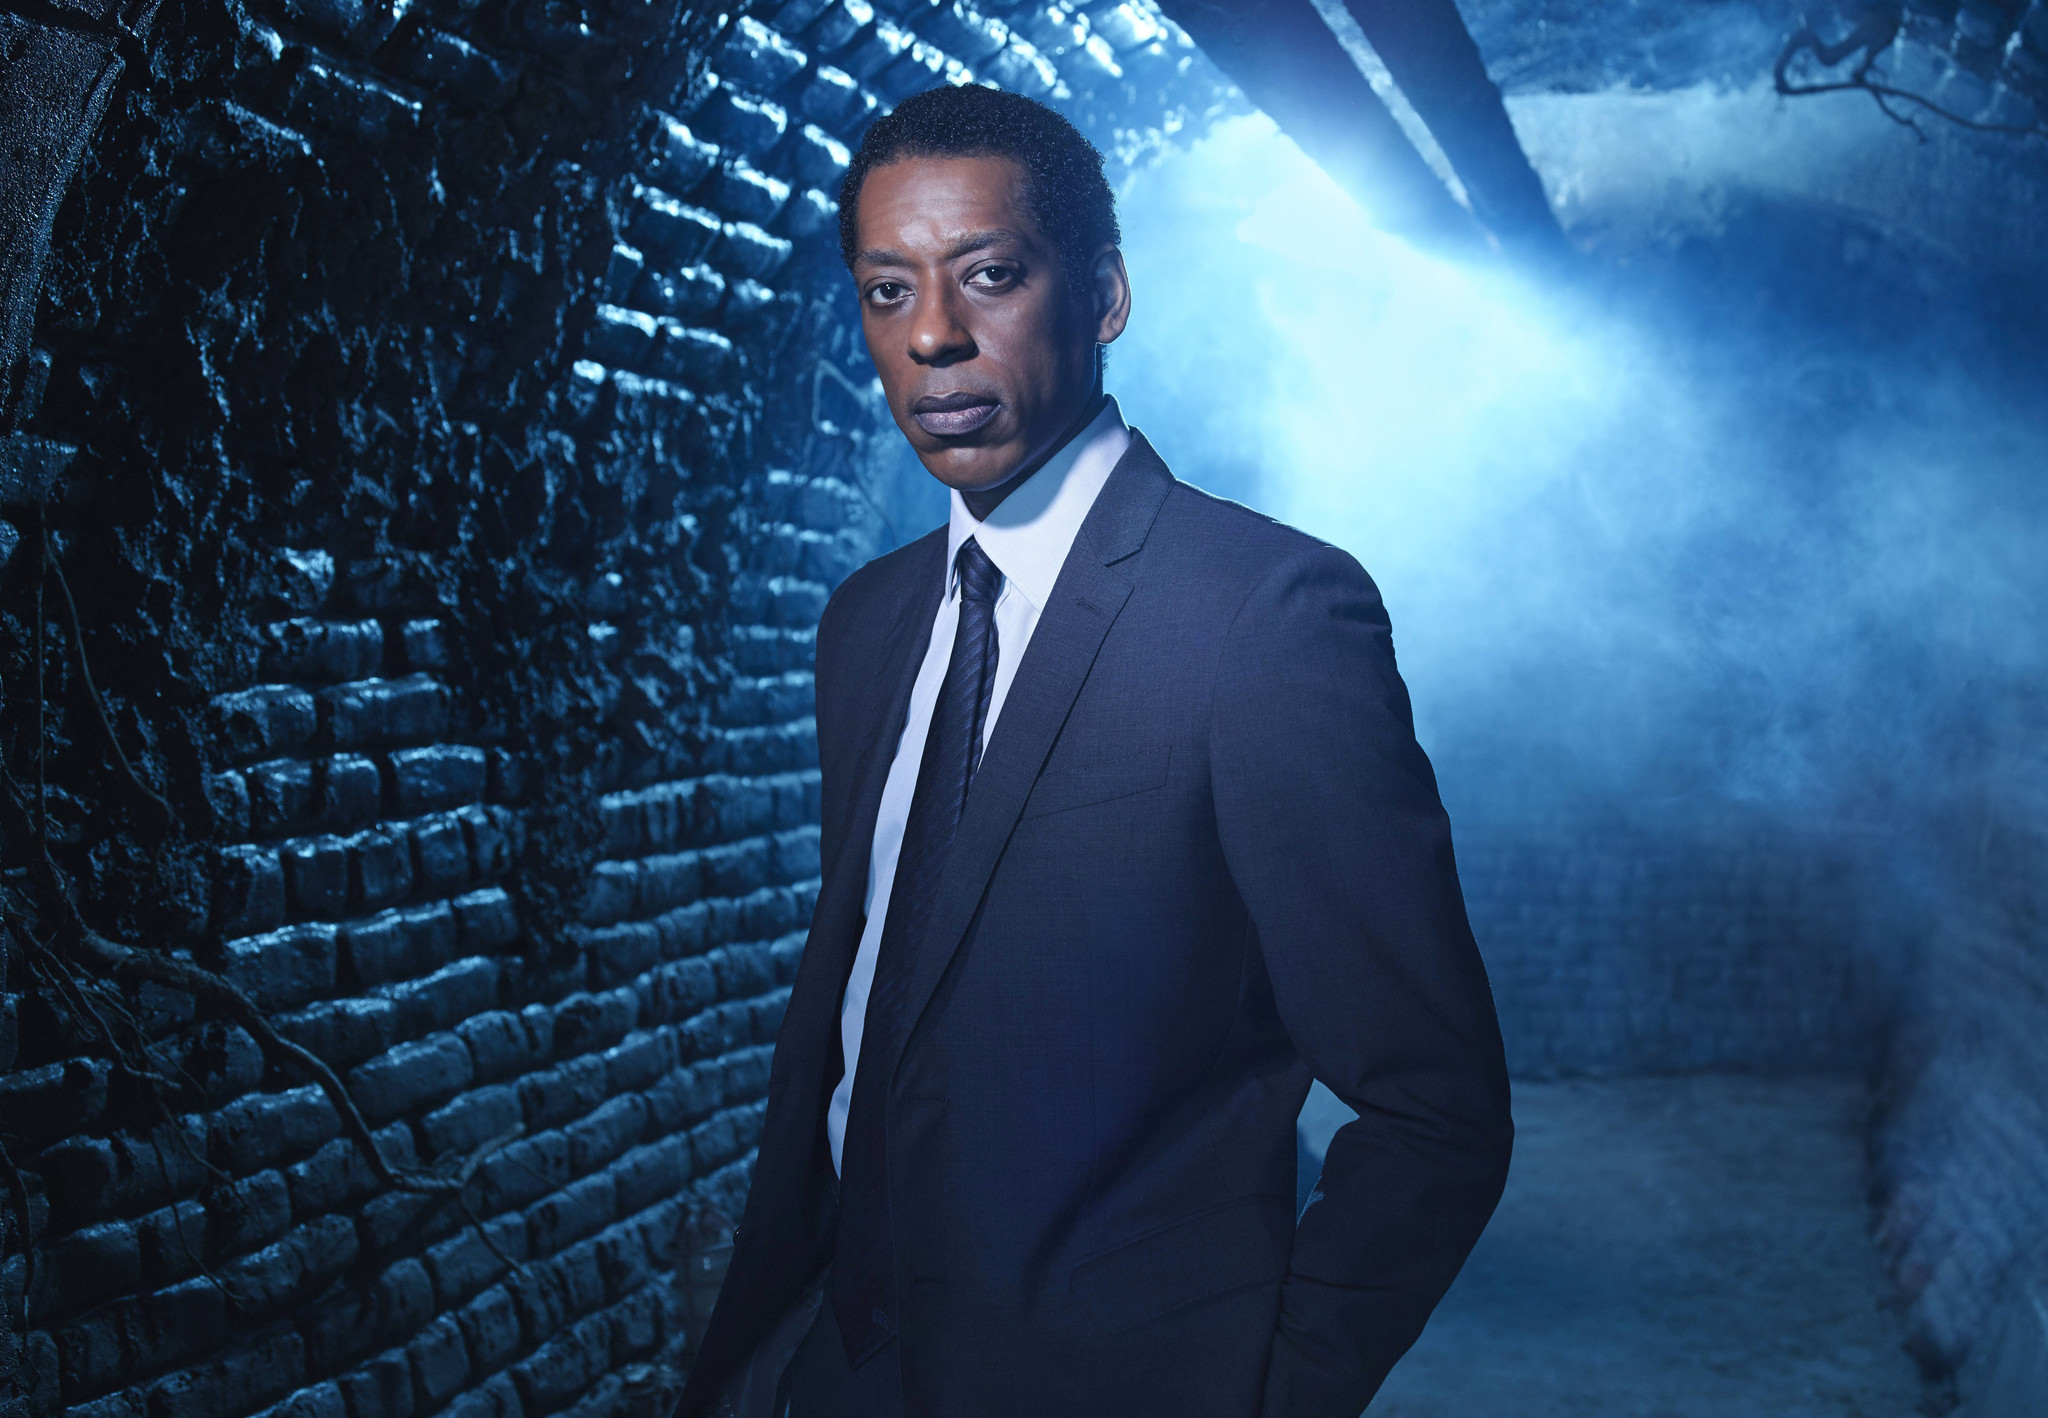 Orlando Jones revela por qué dejó Sleepy Hollow